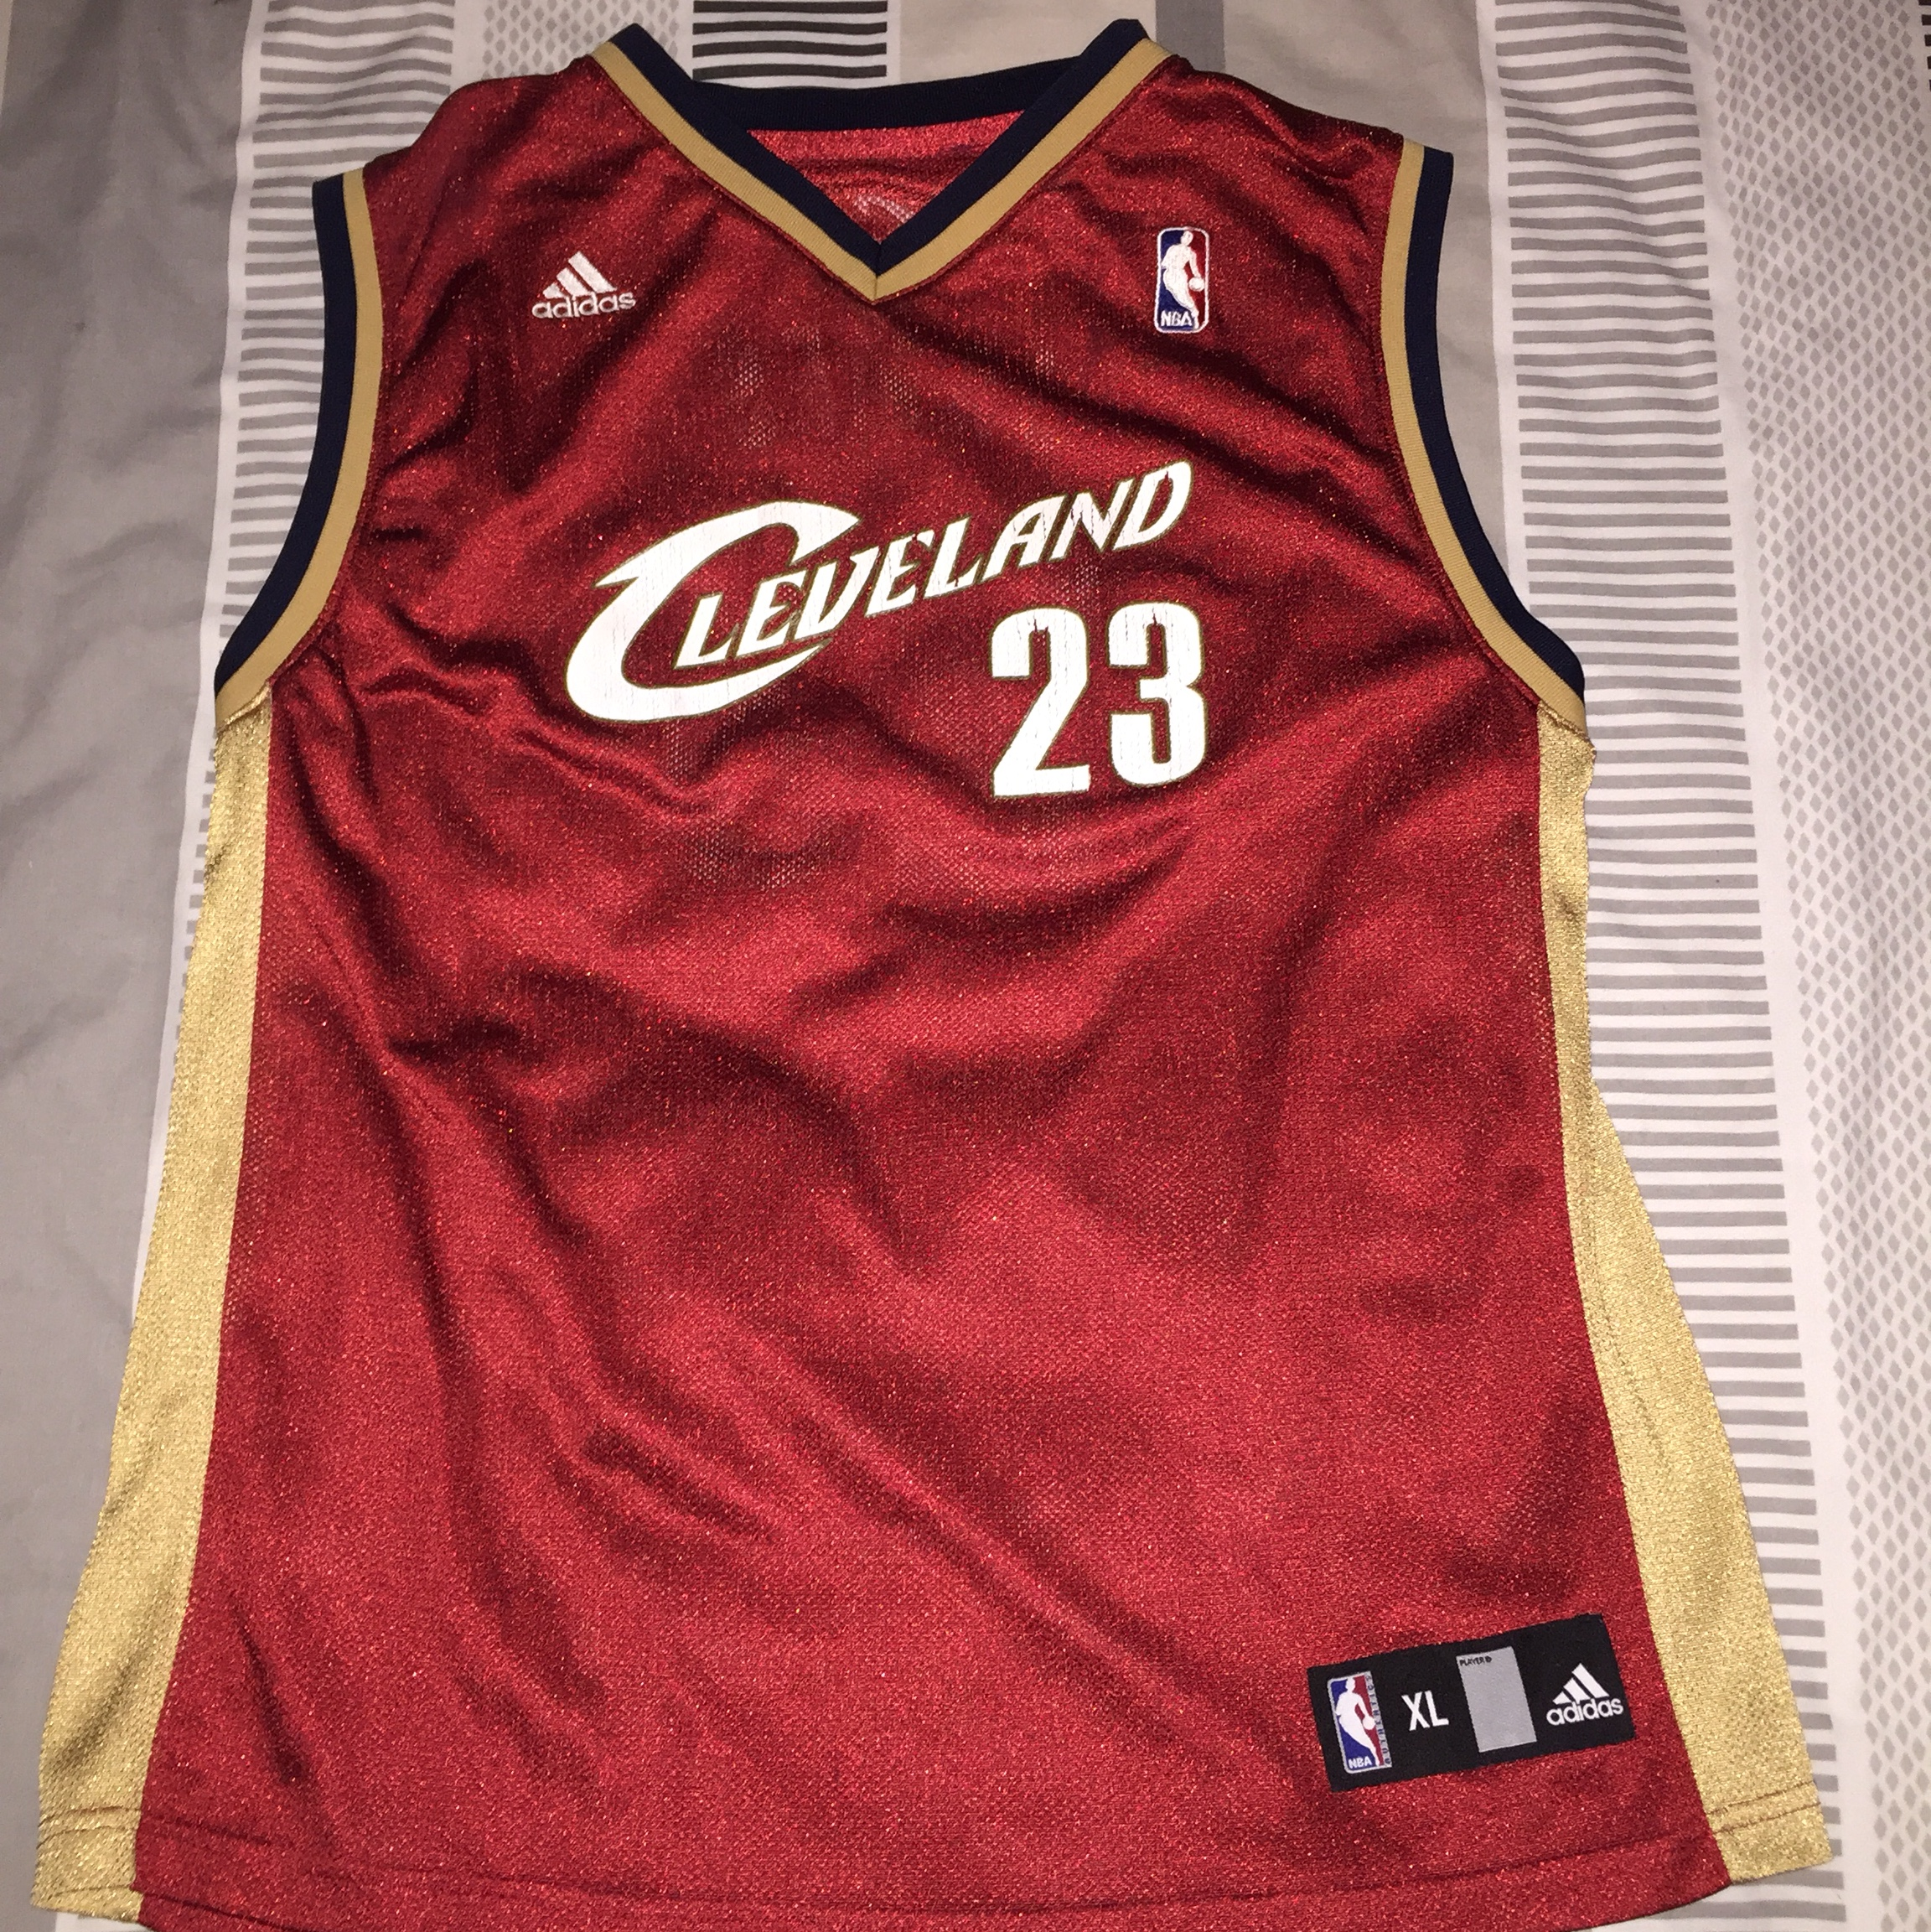 timeless design 76aa8 3cef2 Retro Adidas Cleveland Cavaliers jersey with LeBron... - Depop